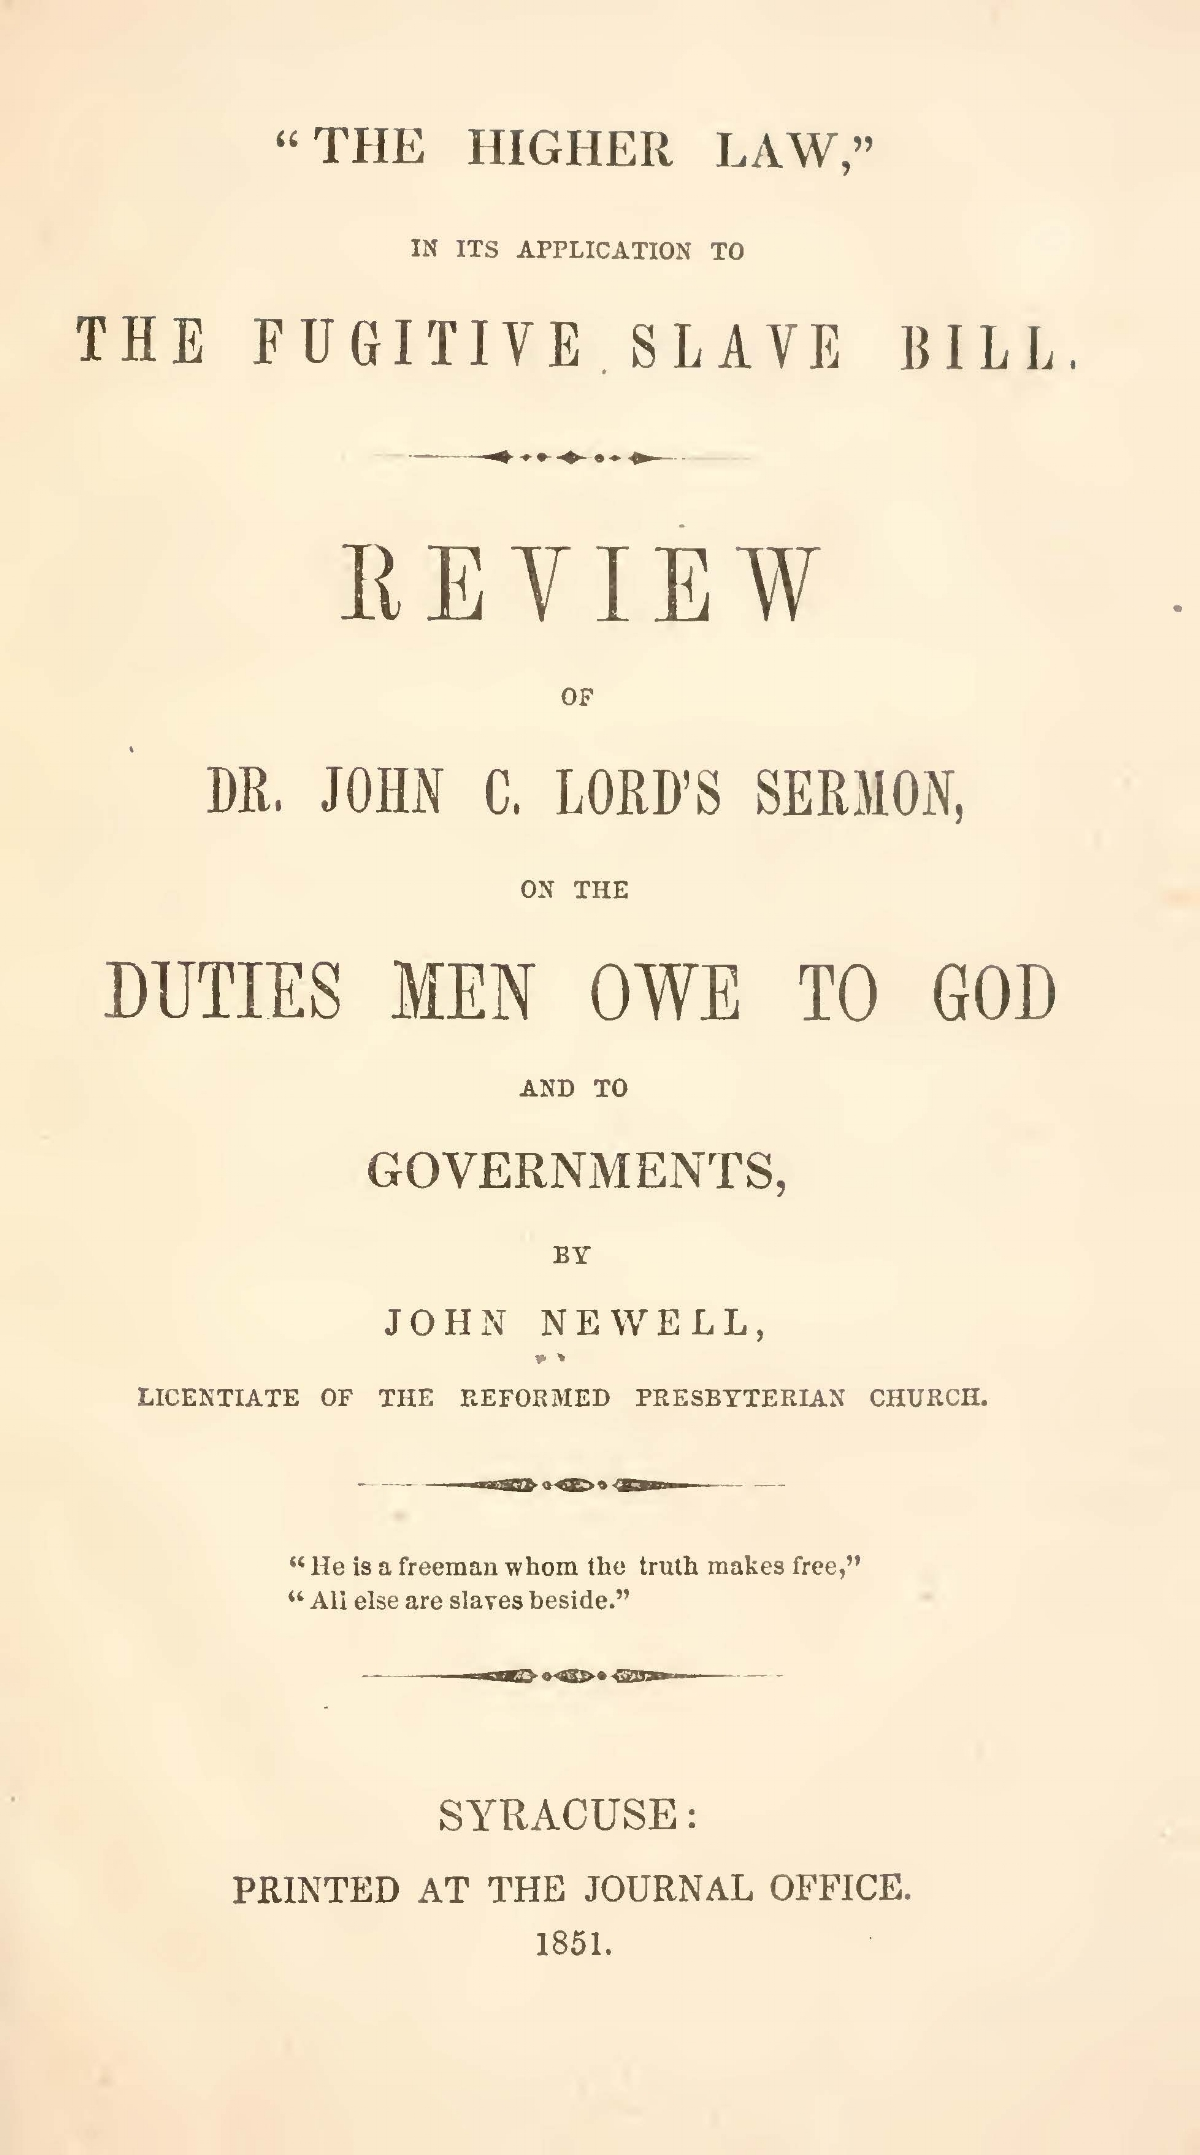 Newell, John, The Higher Law, Review Title Page.jpg